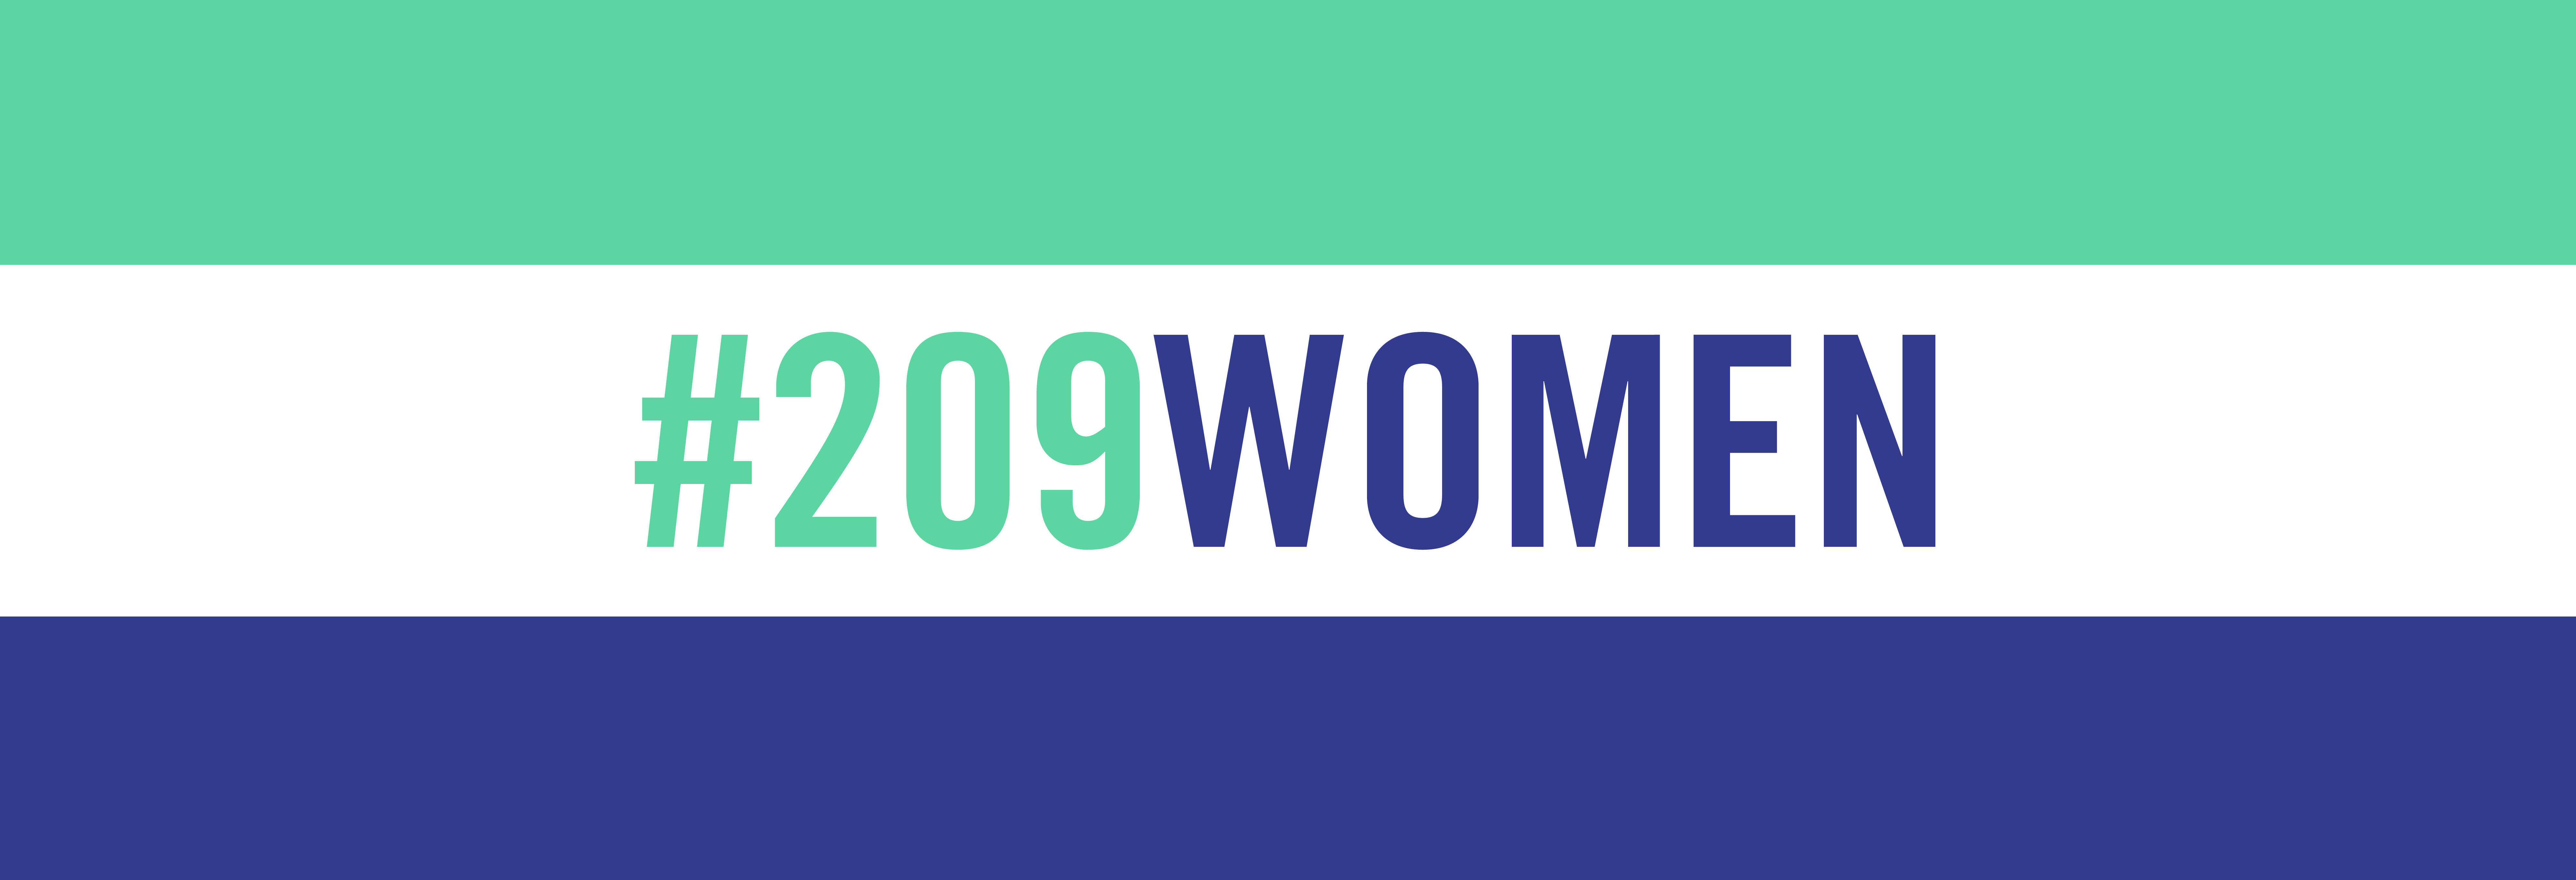 209 Women for website